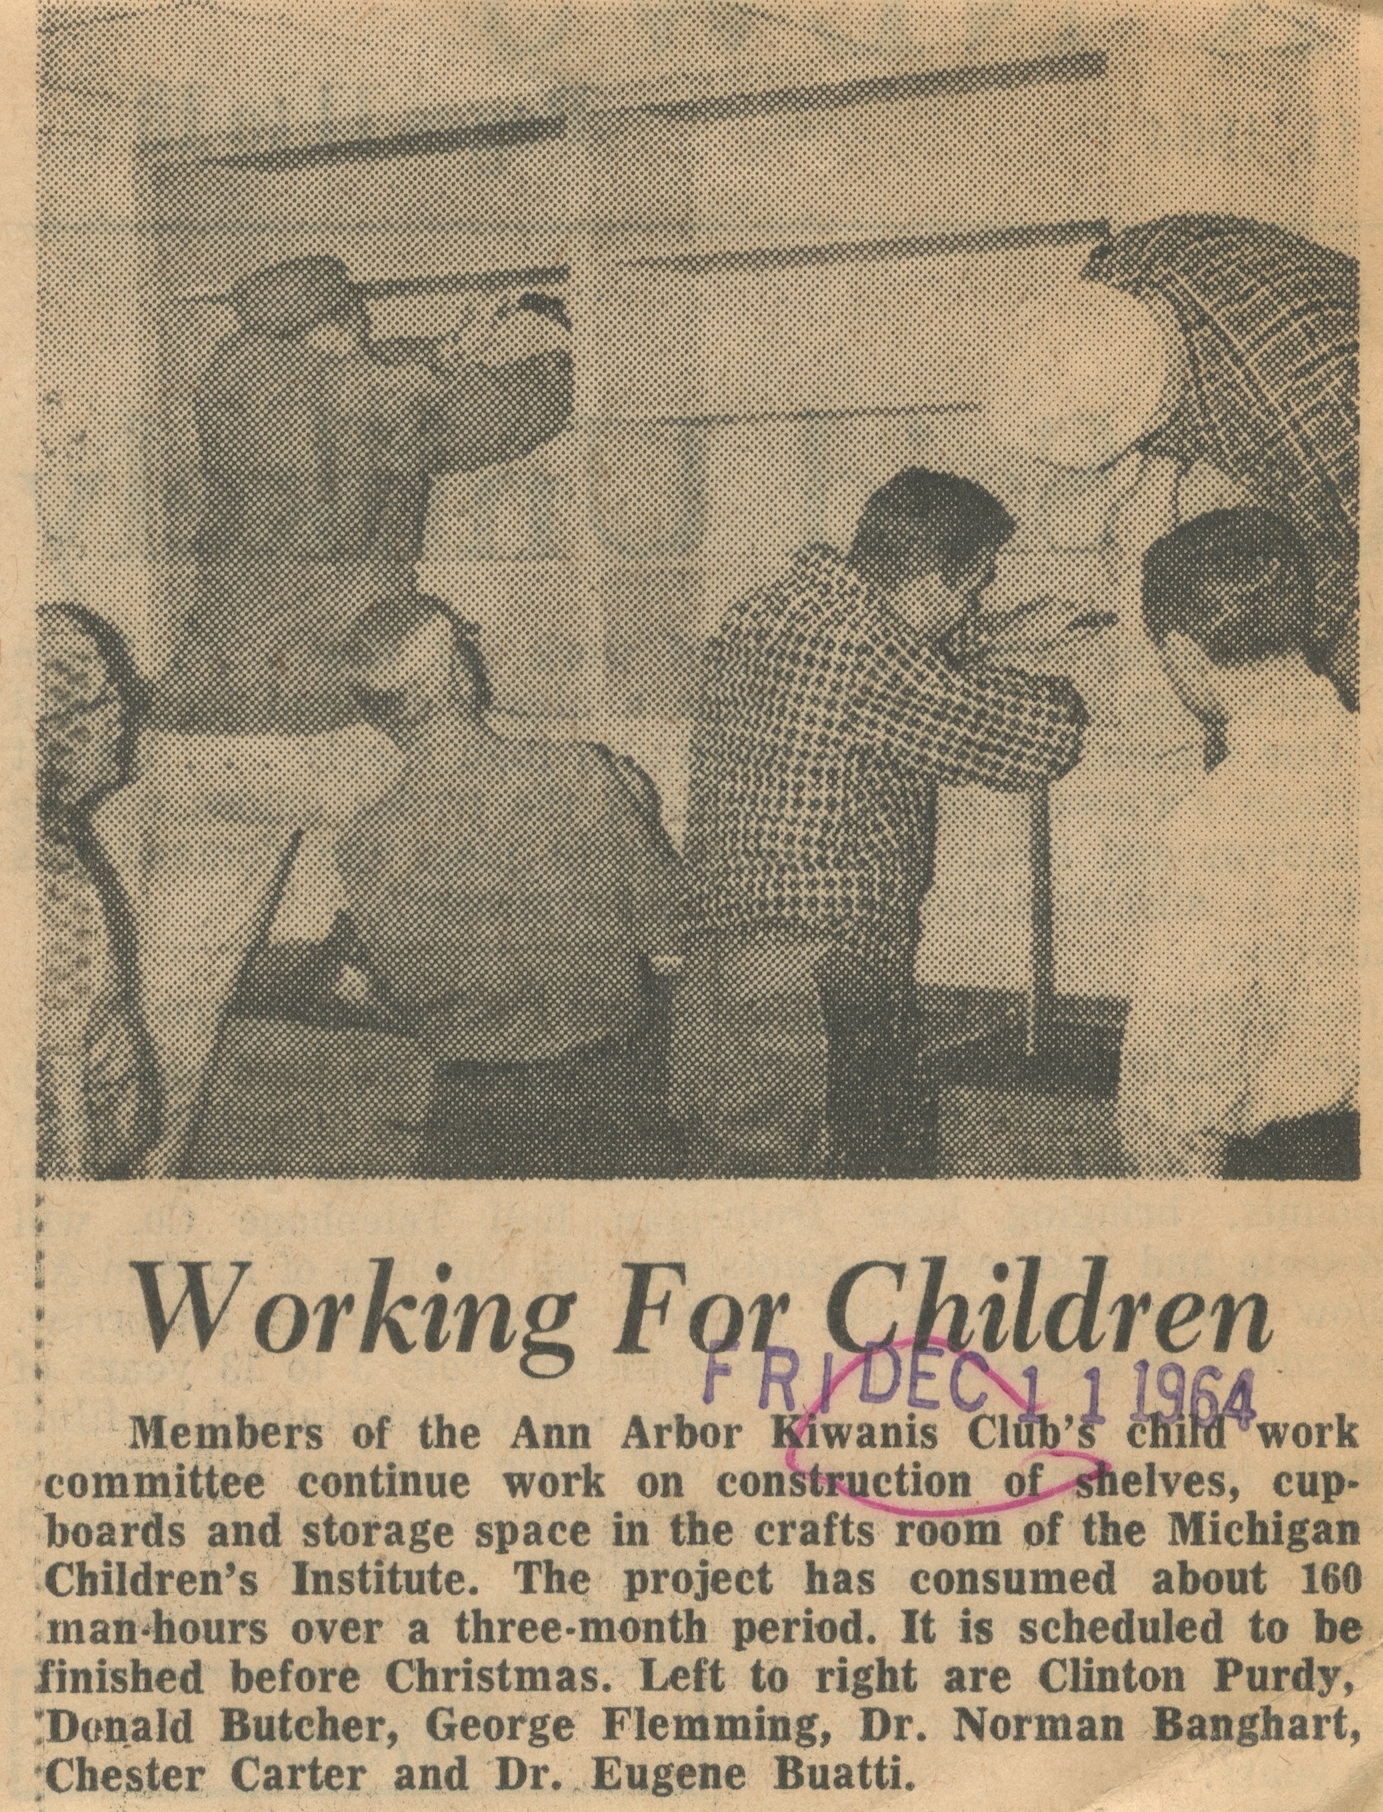 Working For Children image